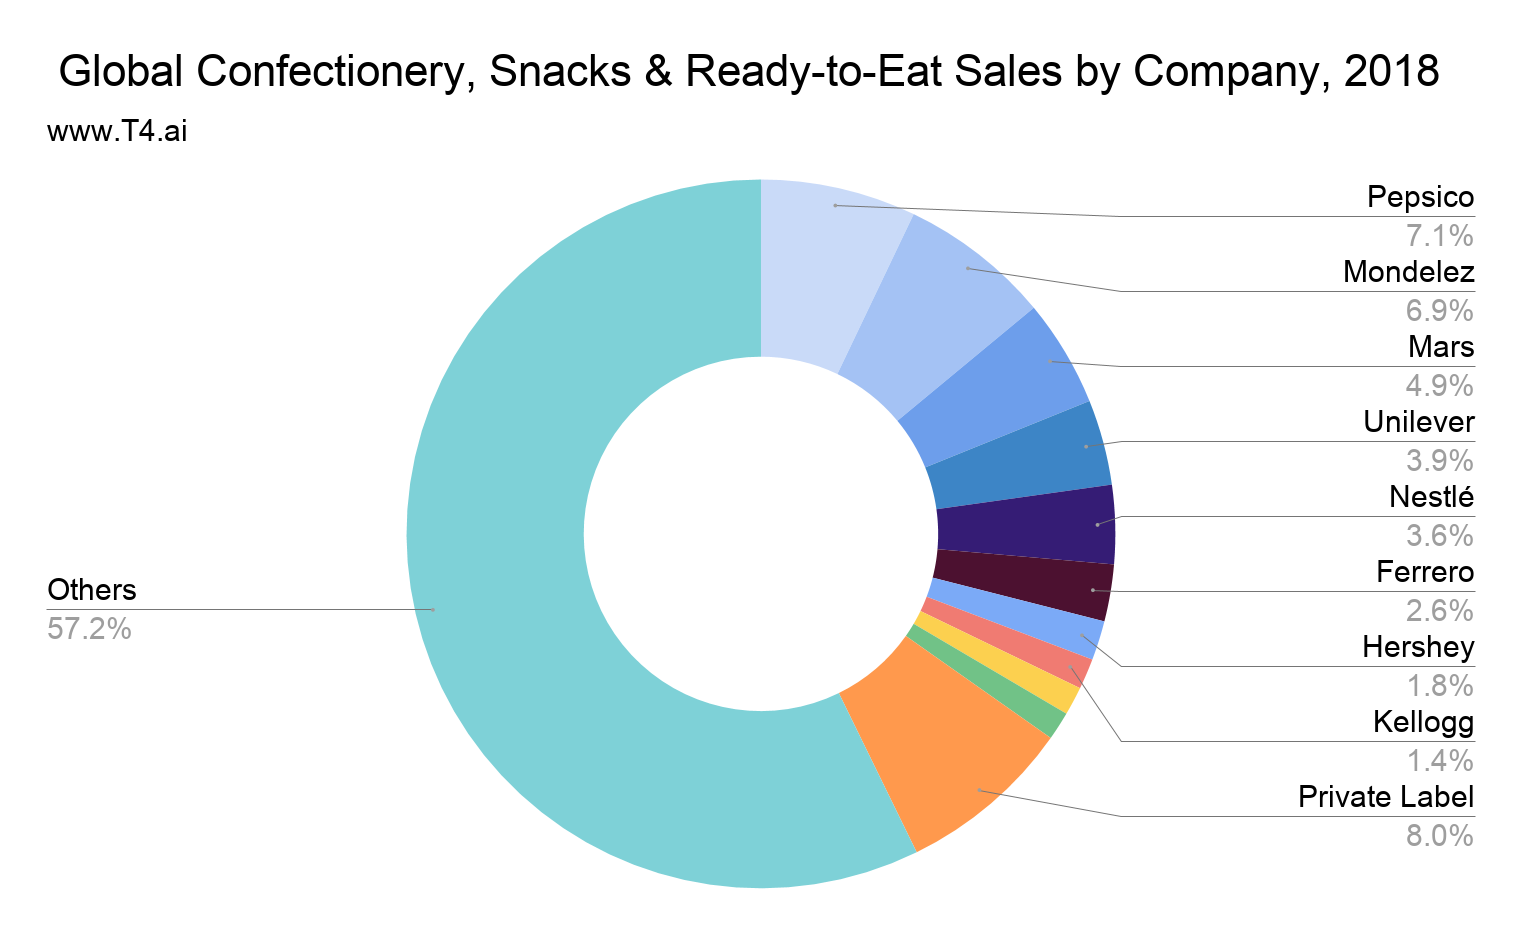 Snack Market Share